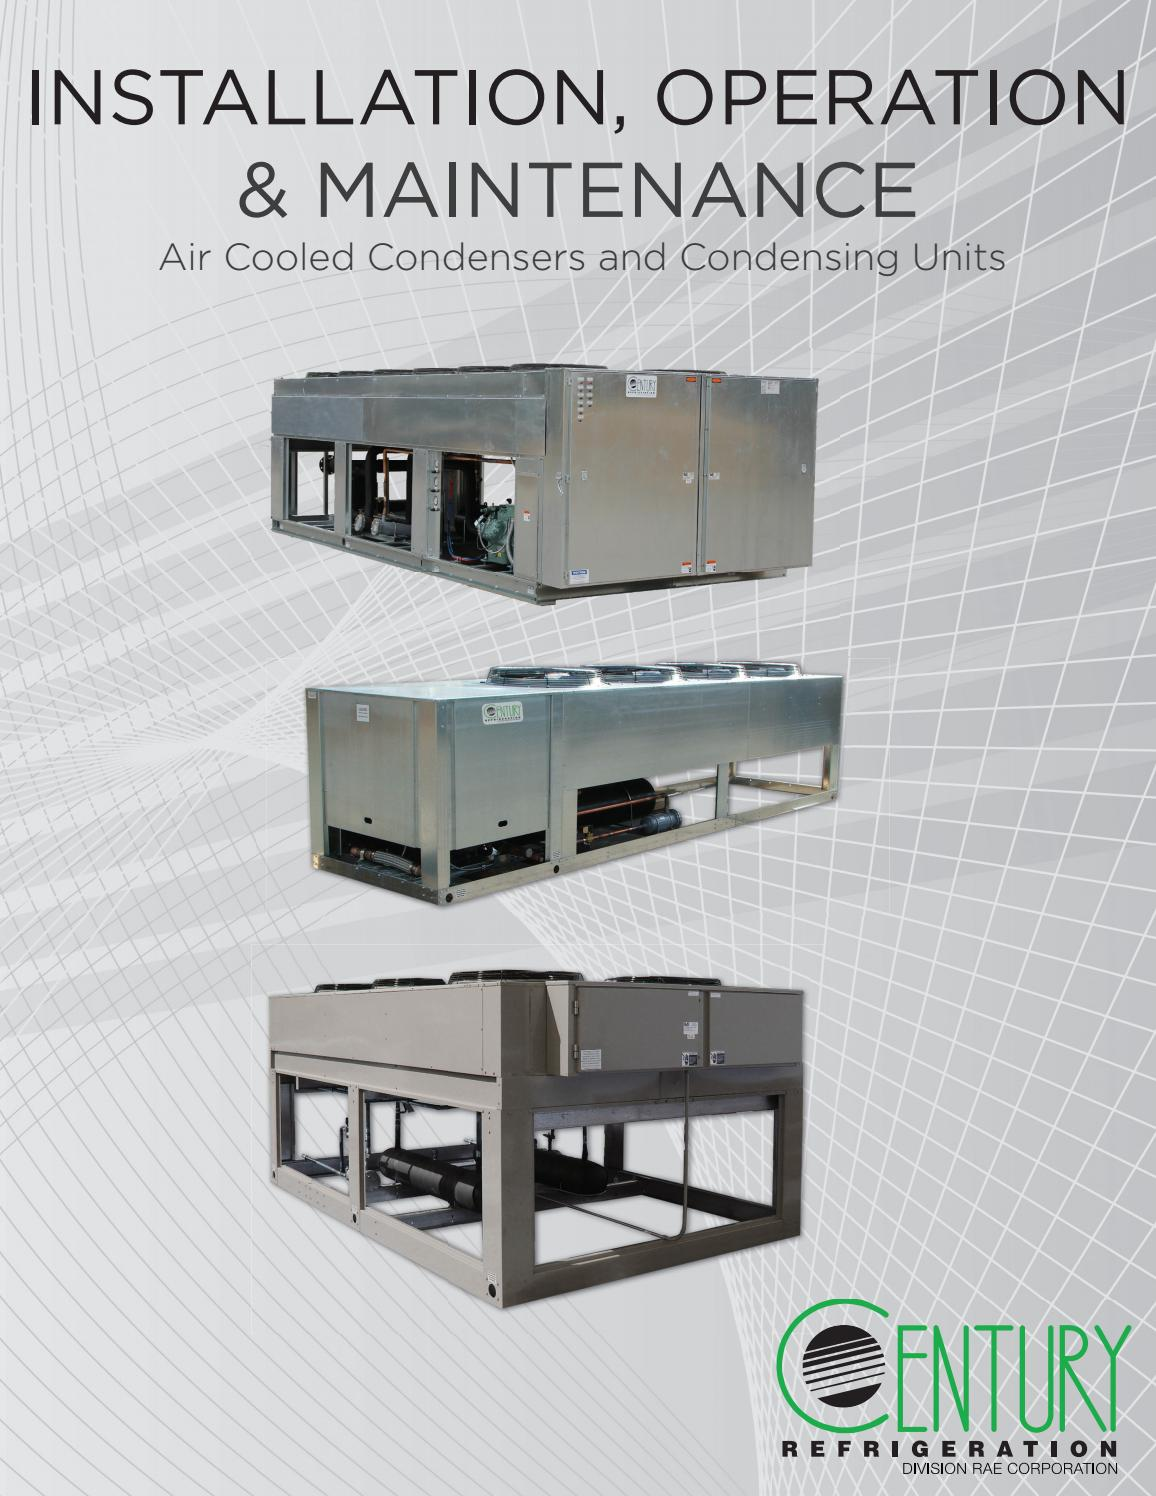 Air Cooled Condensers And Condensing Units Iom By Rae Corporation Installation Unit Refrigeration System Issuu